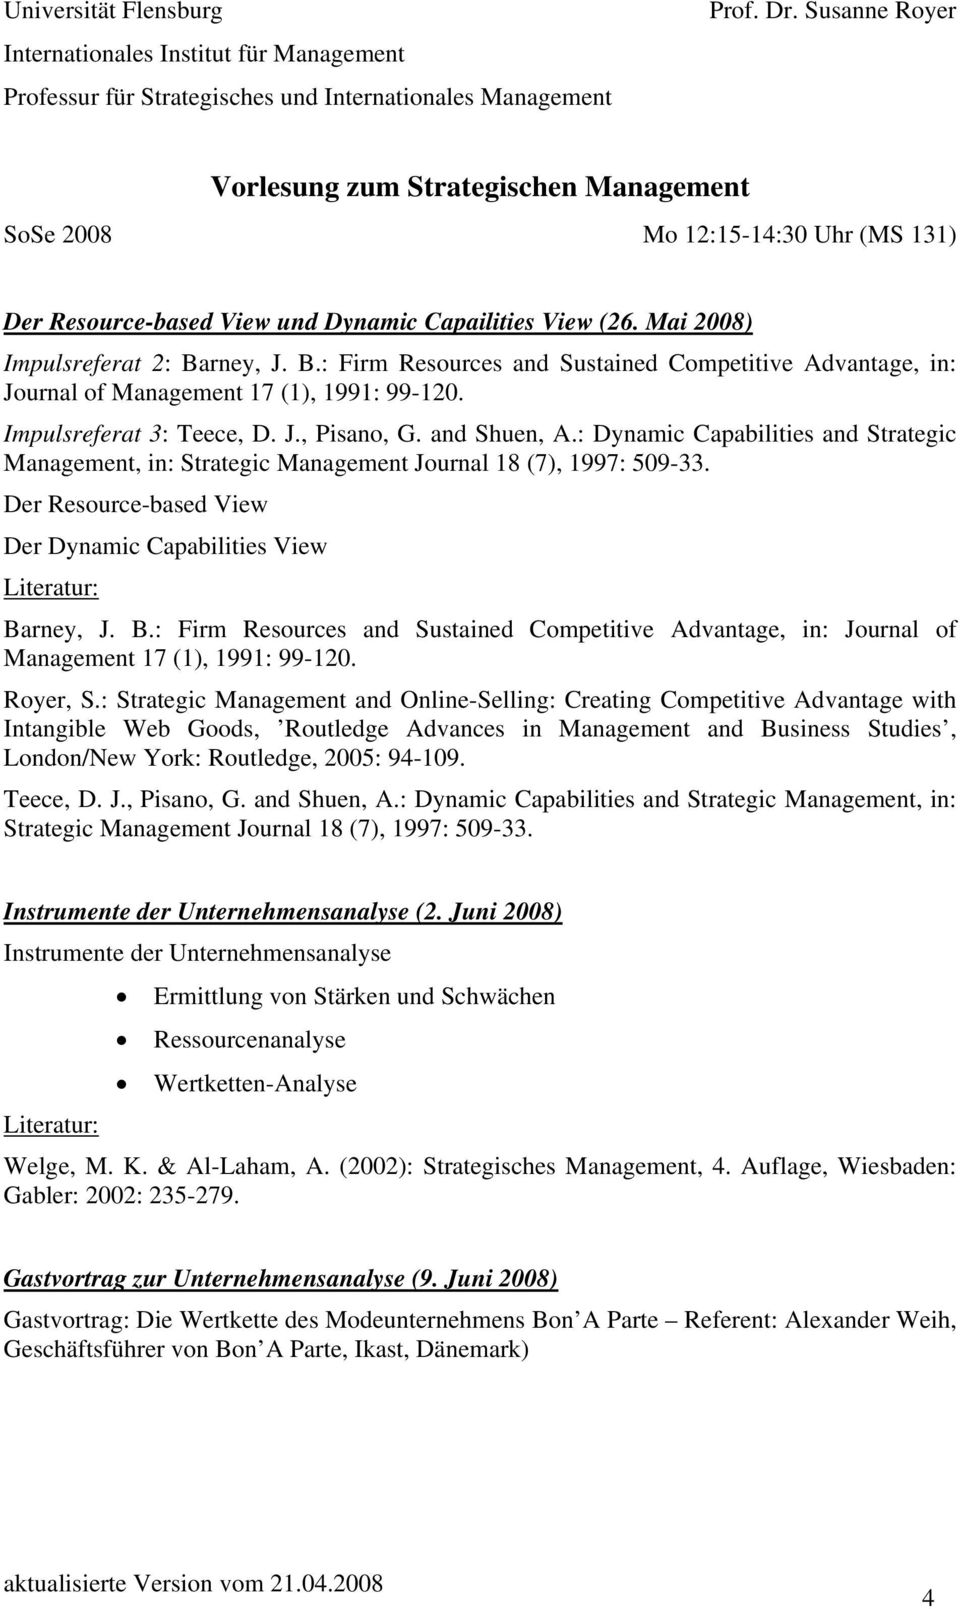 Der Resource-based View Der Dynamic Capabilities View Barney, J. B.: Firm Resources and Sustained Competitive Advantage, in: Journal of Management 17 (1), 1991: 99-120.